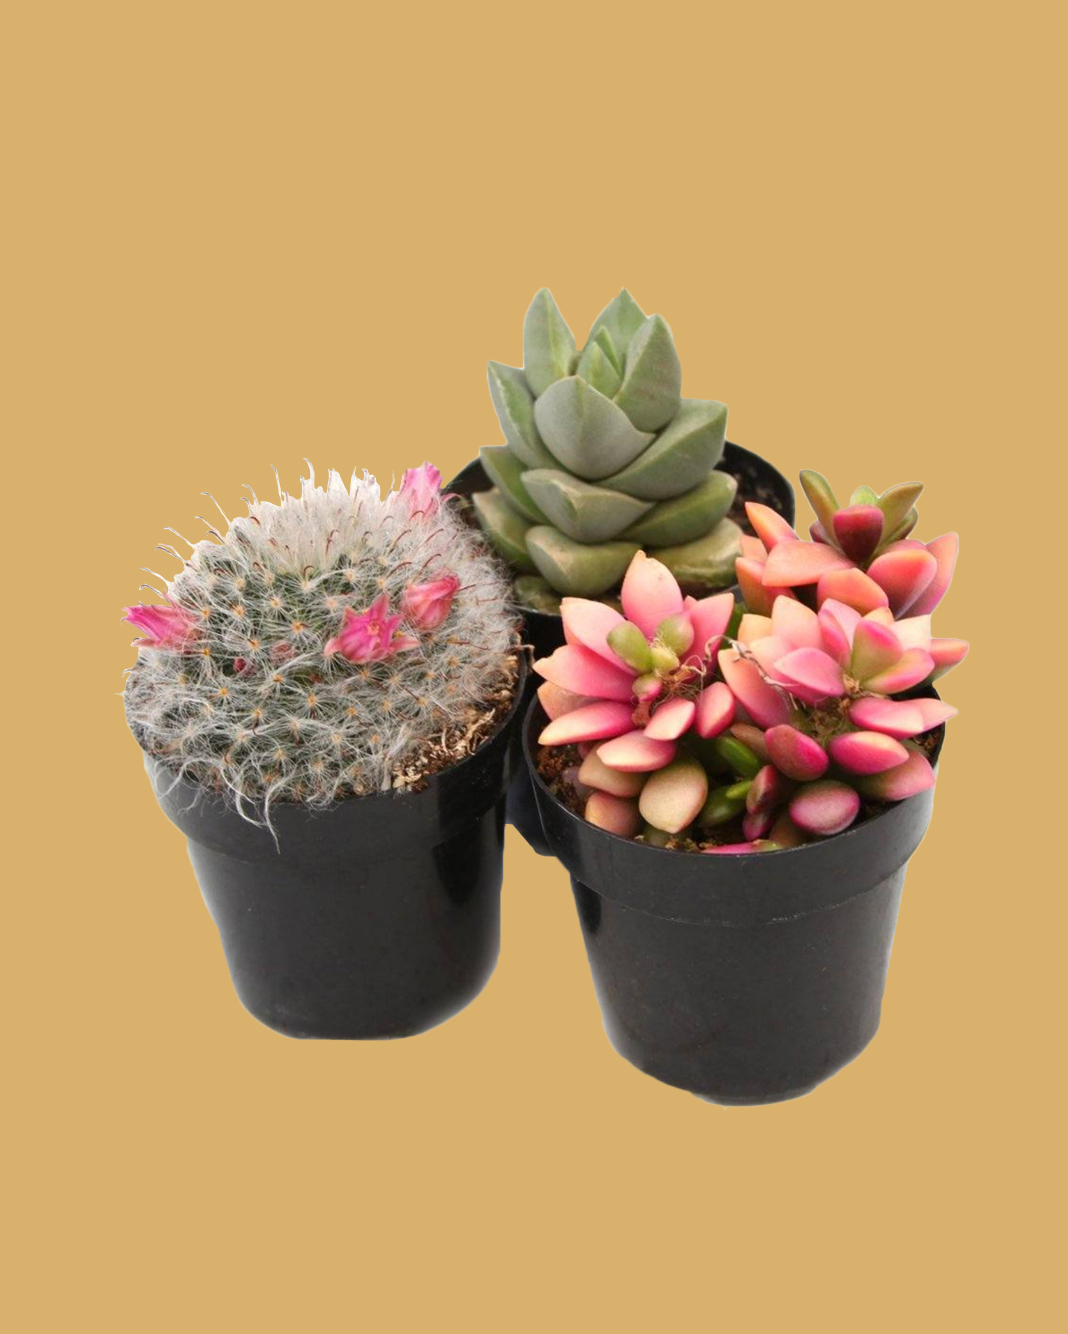 two succulents and a cactus in black containers